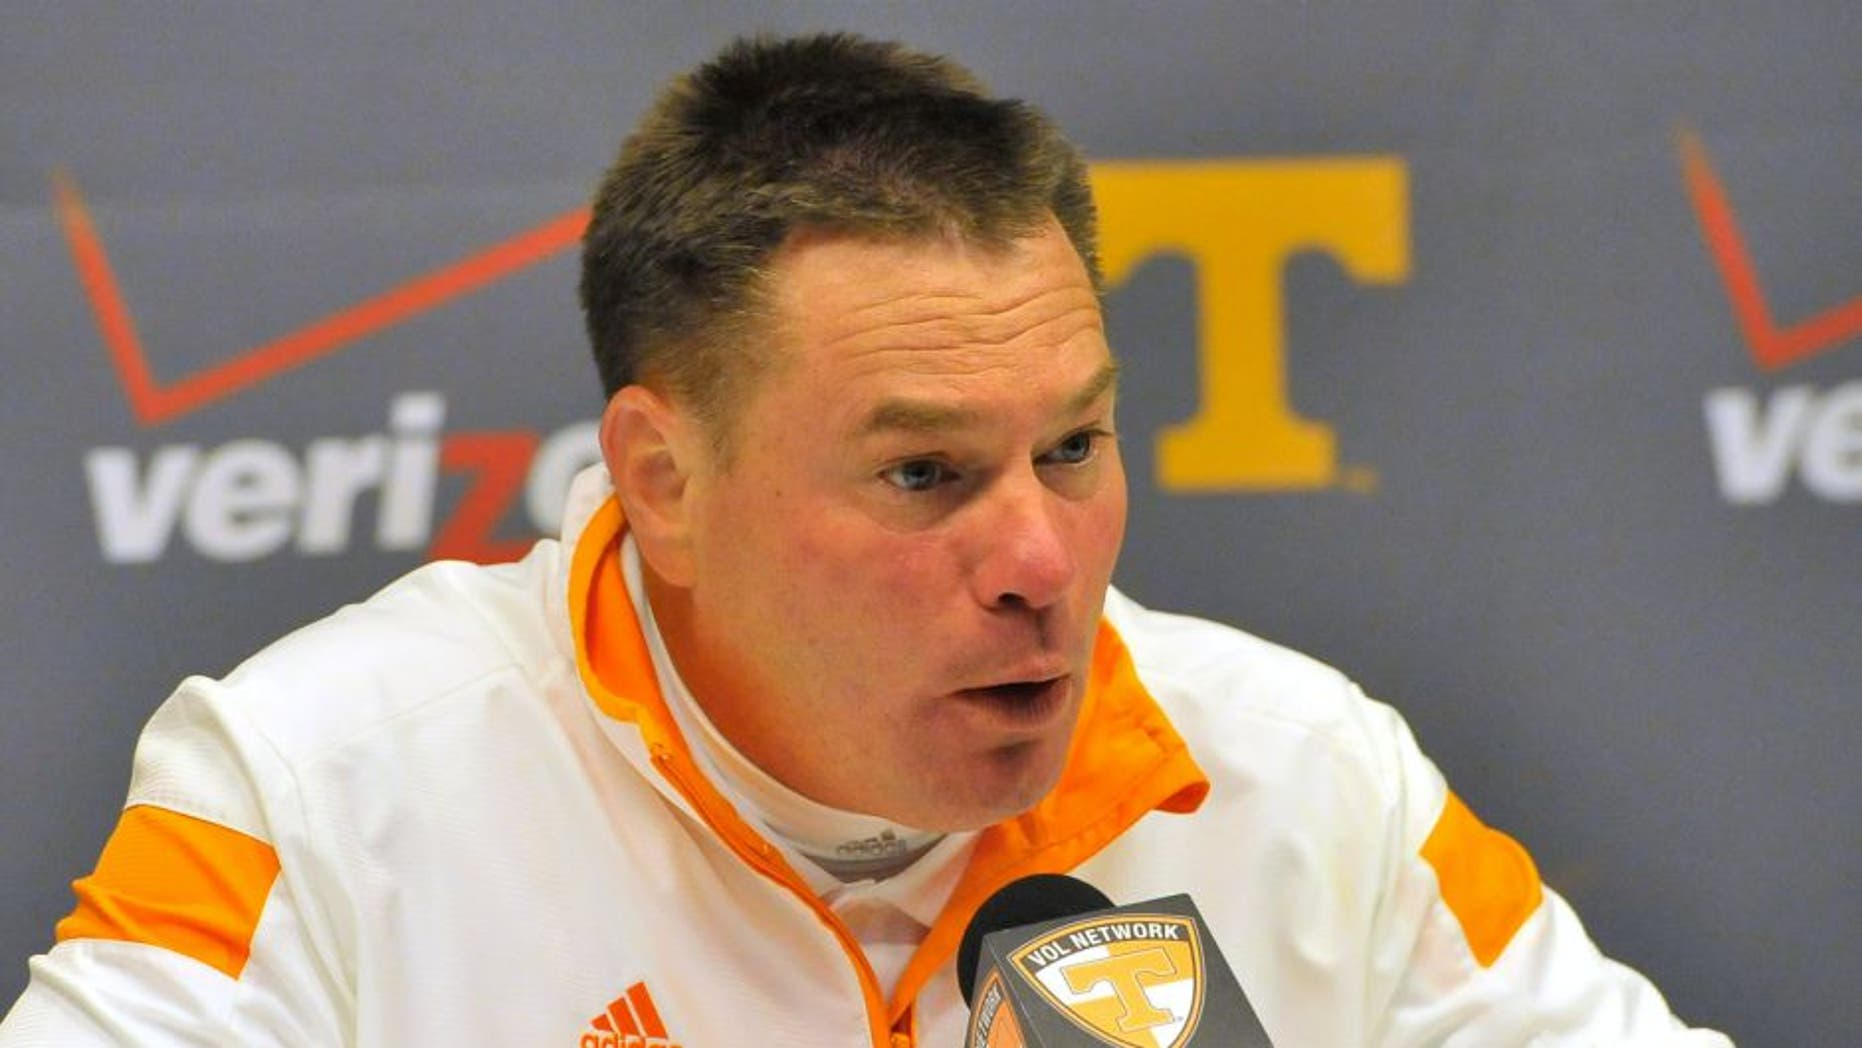 Nov 22, 2014; Knoxville, TN, USA; Tennessee Volunteers head coach Butch Jones talks with the media following the game against the Missouri Tigers at Neyland Stadium. Missouri won 29-21. Mandatory Credit: Jim Brown-USA TODAY Sports